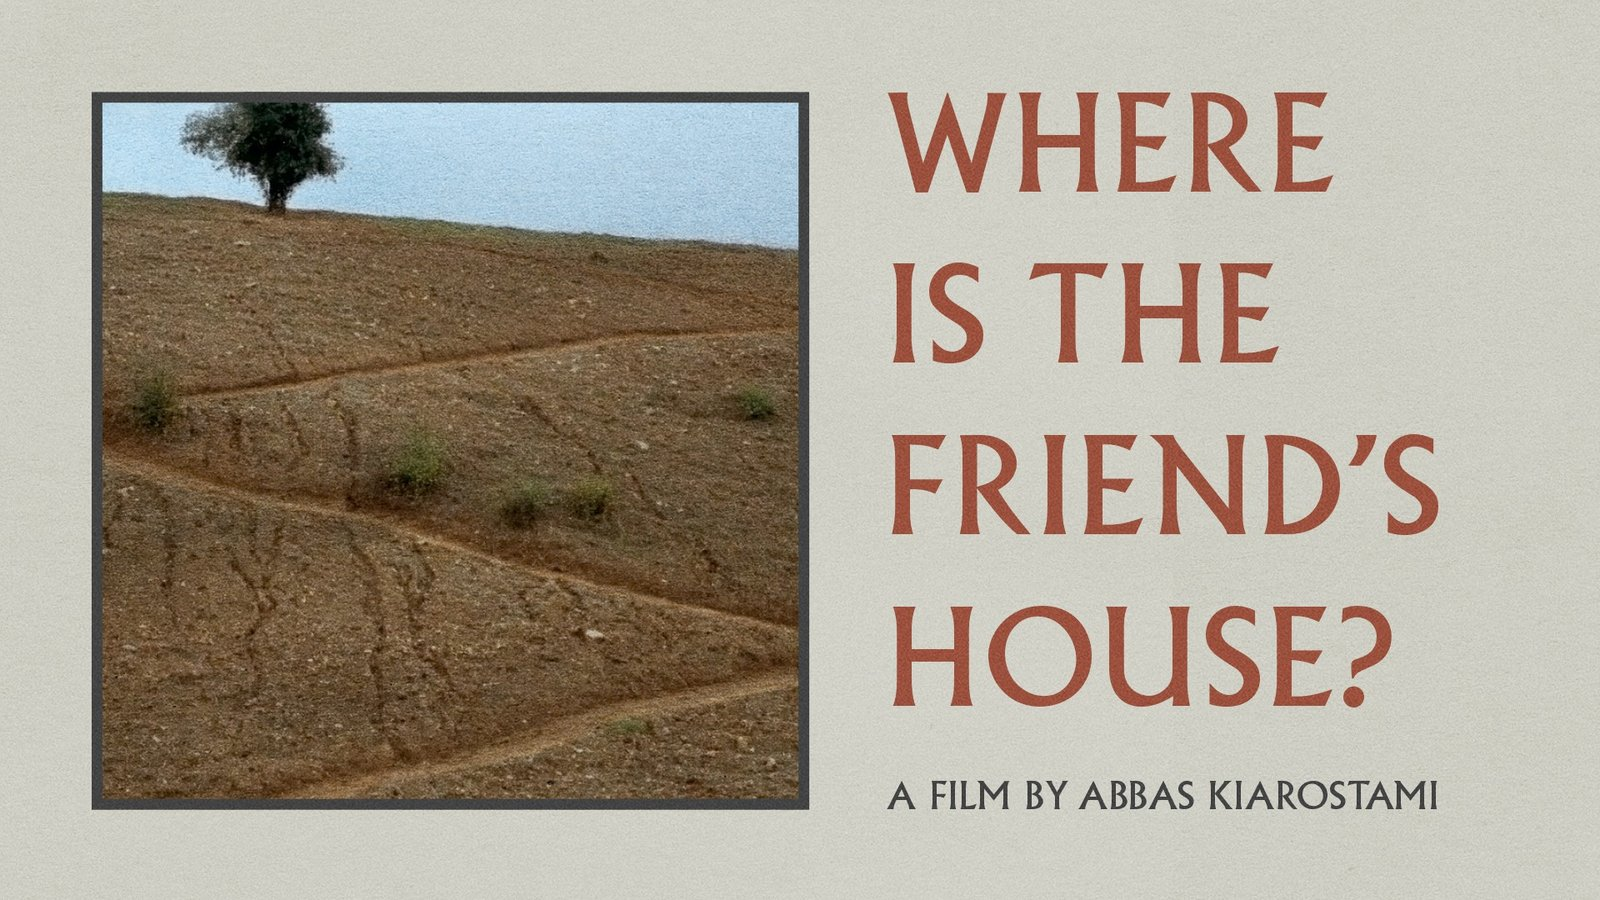 Where Is the Friend's House?